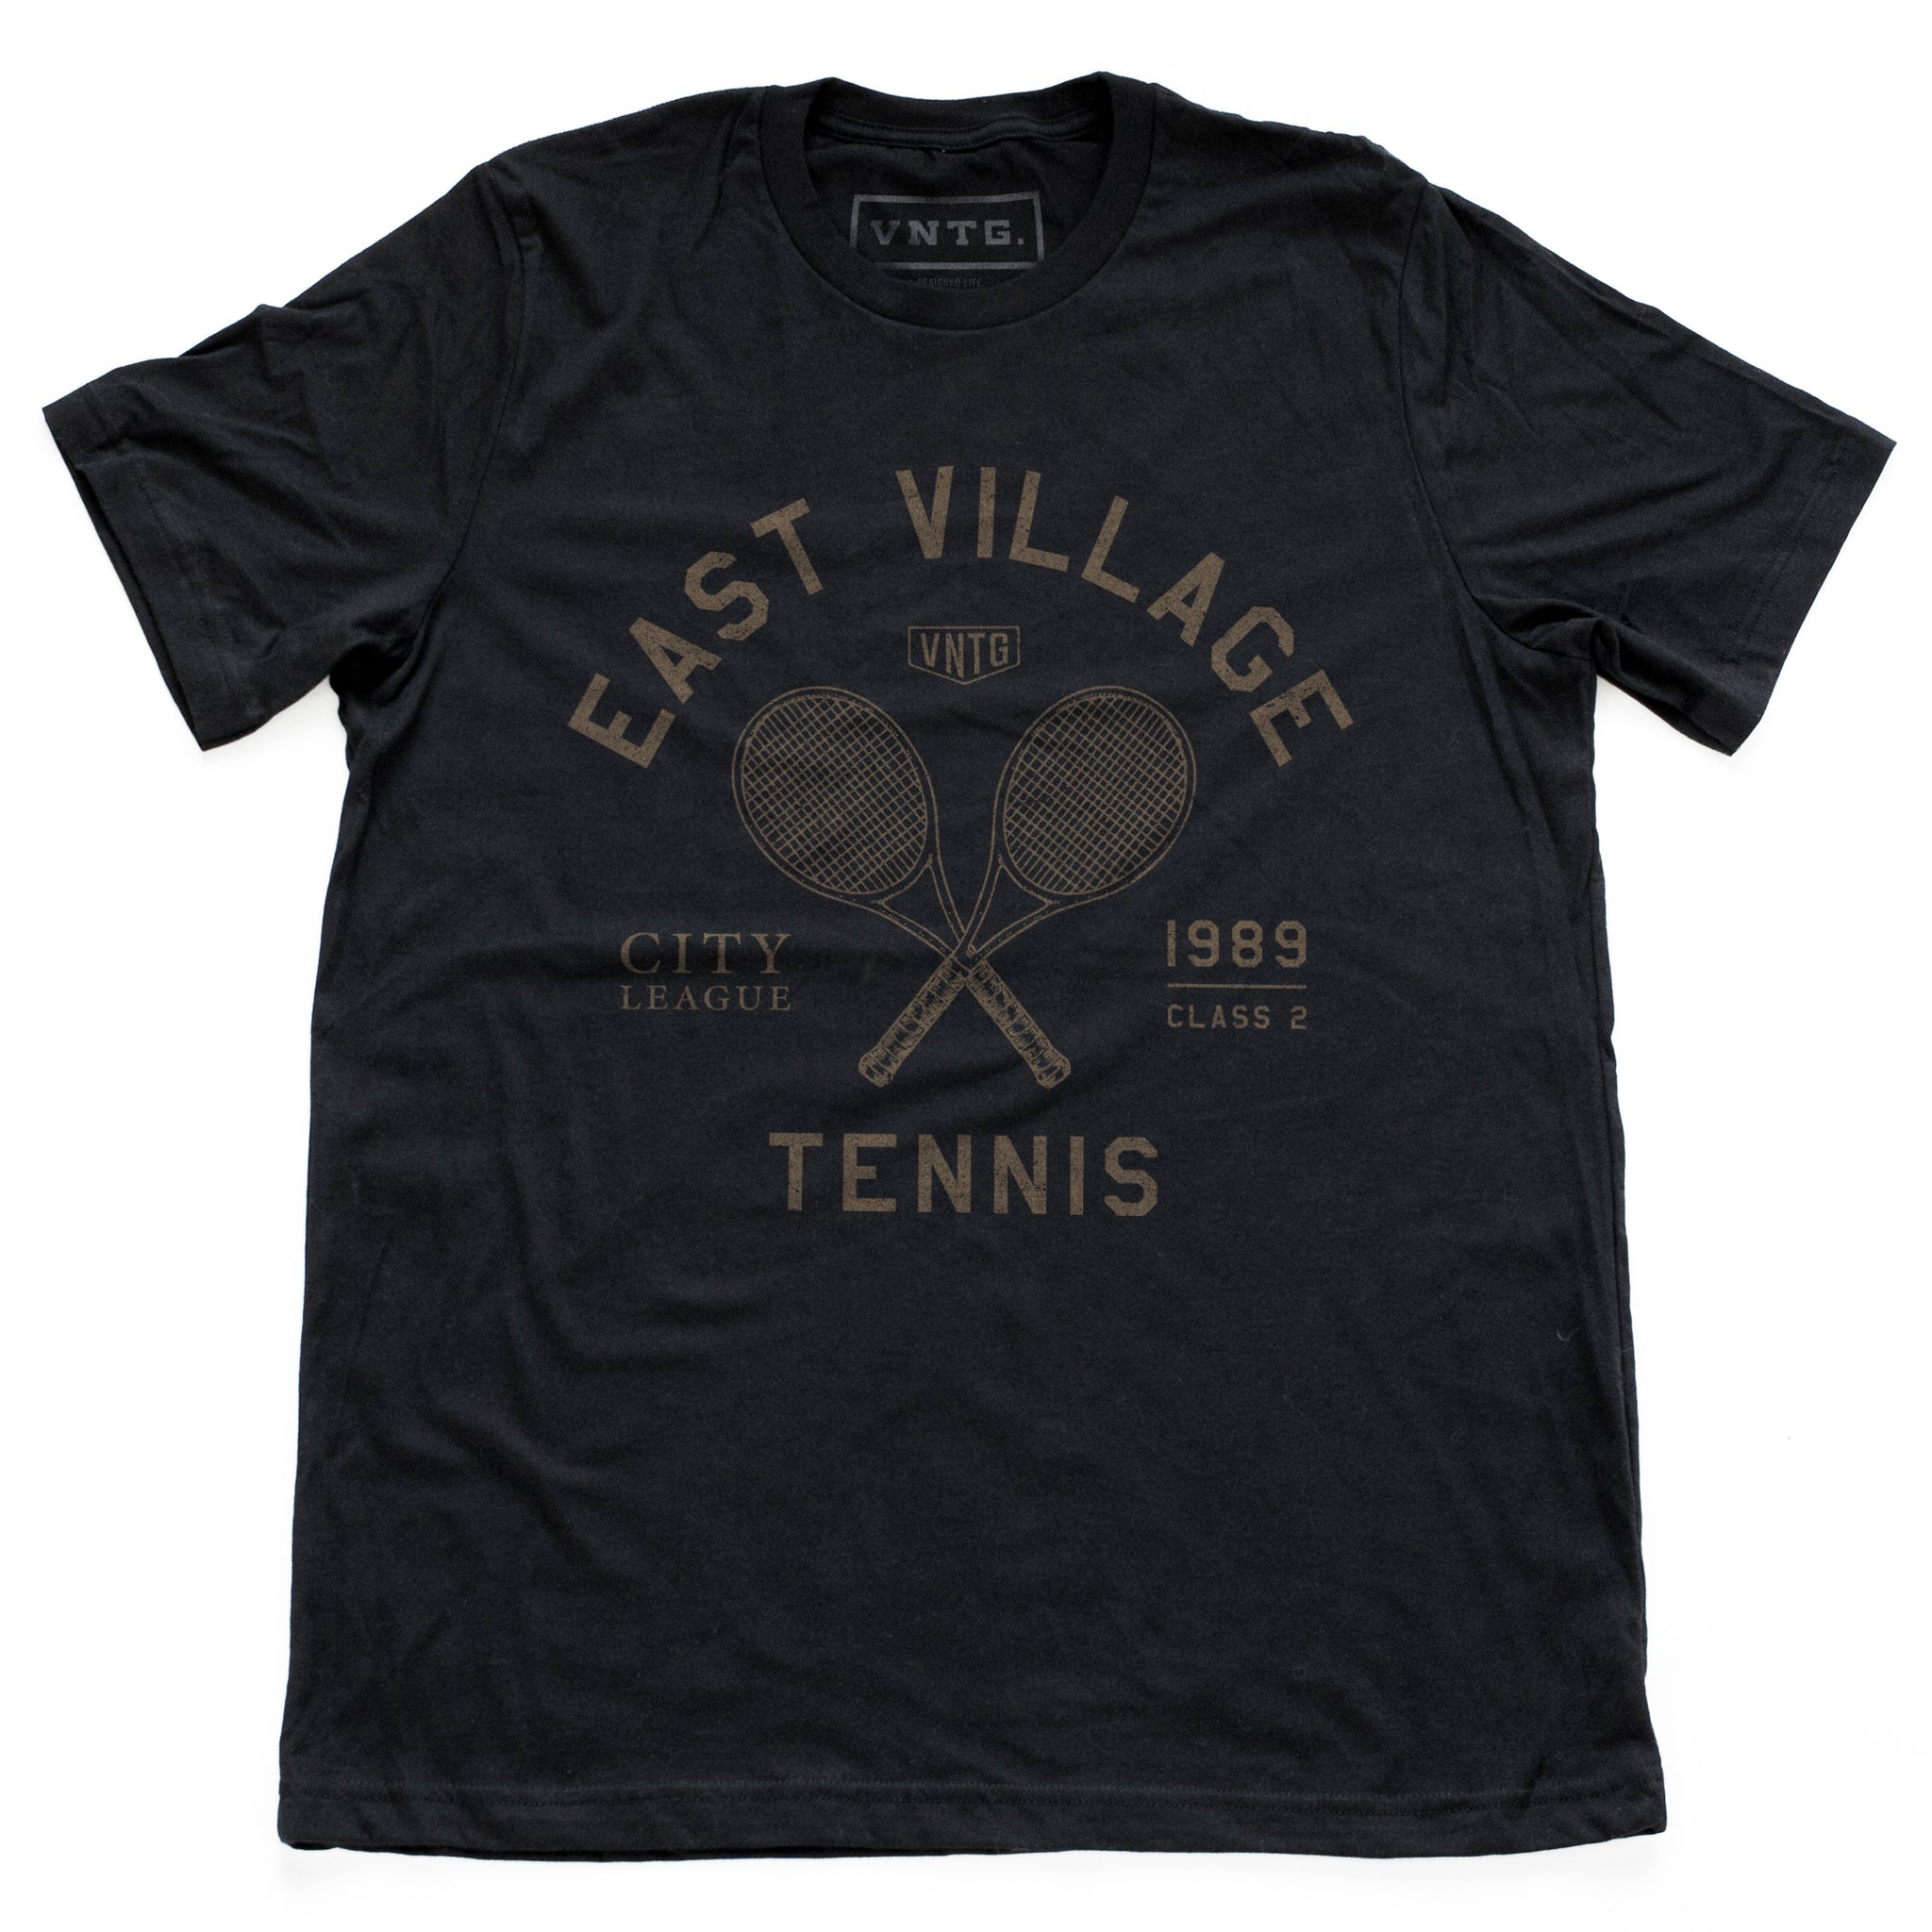 "Retro, vintage-inspired graphic t-shirt for a fictional East Village (New York City) city tennis league, featuring a graphic of a crossed set of tennis racquets and the words ""East Village"" in an arc above. By fashion brand VNTG., from www.wolfsaint.net"